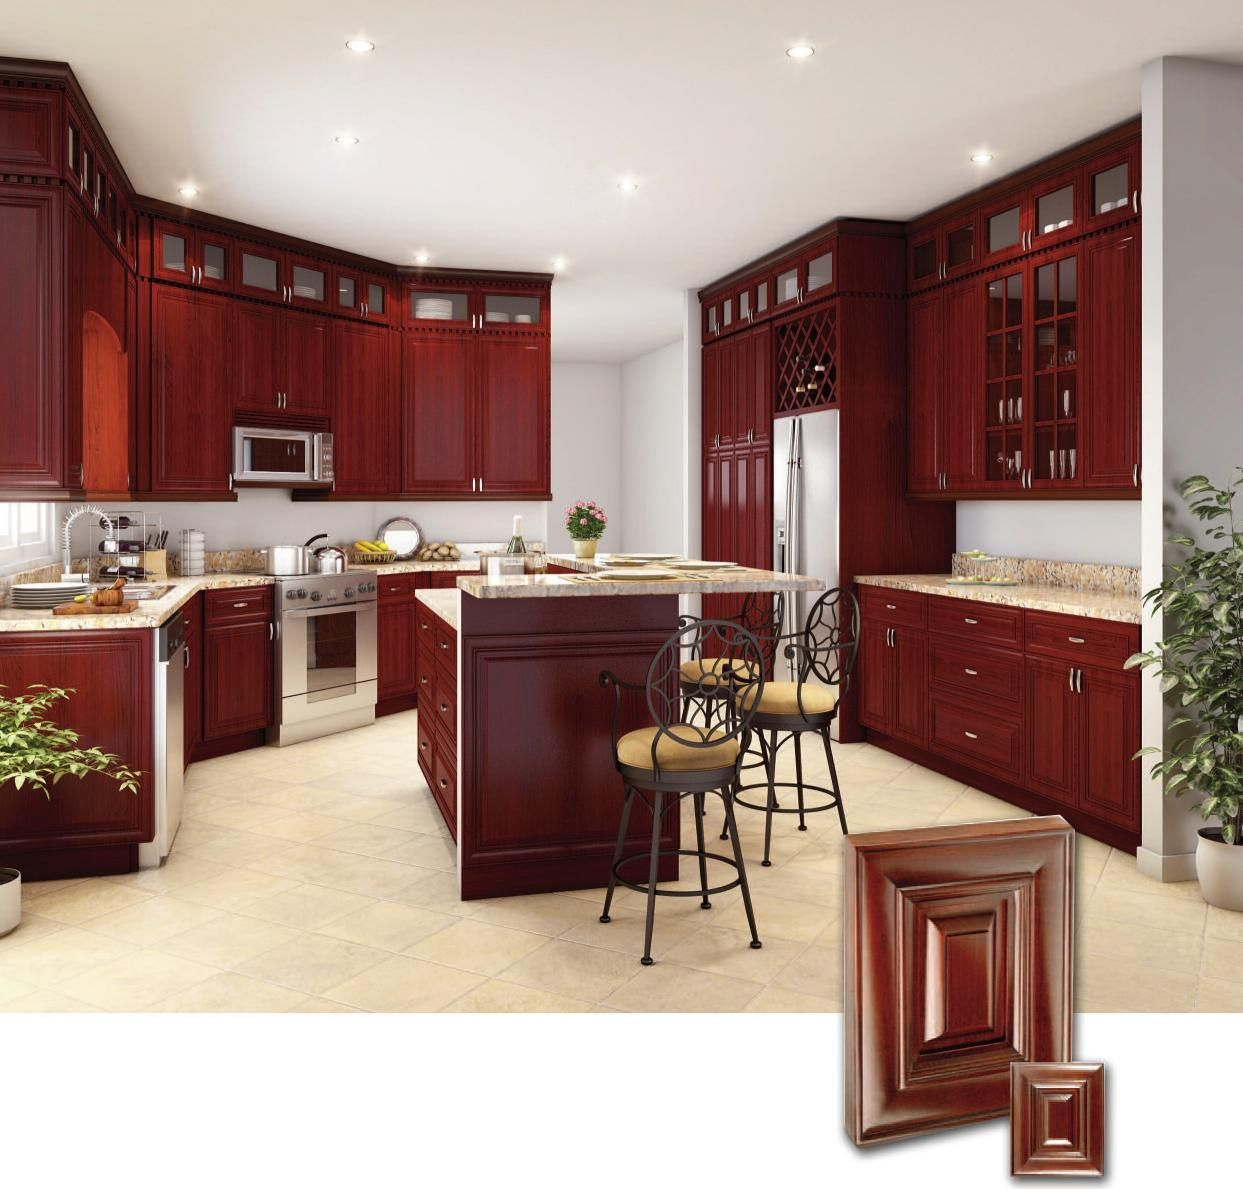 Elegant L Shaped Solid Wood Kitchen Cabinets Latest: Cherry Kitchen Cabinets With Gray Wall And Quartz